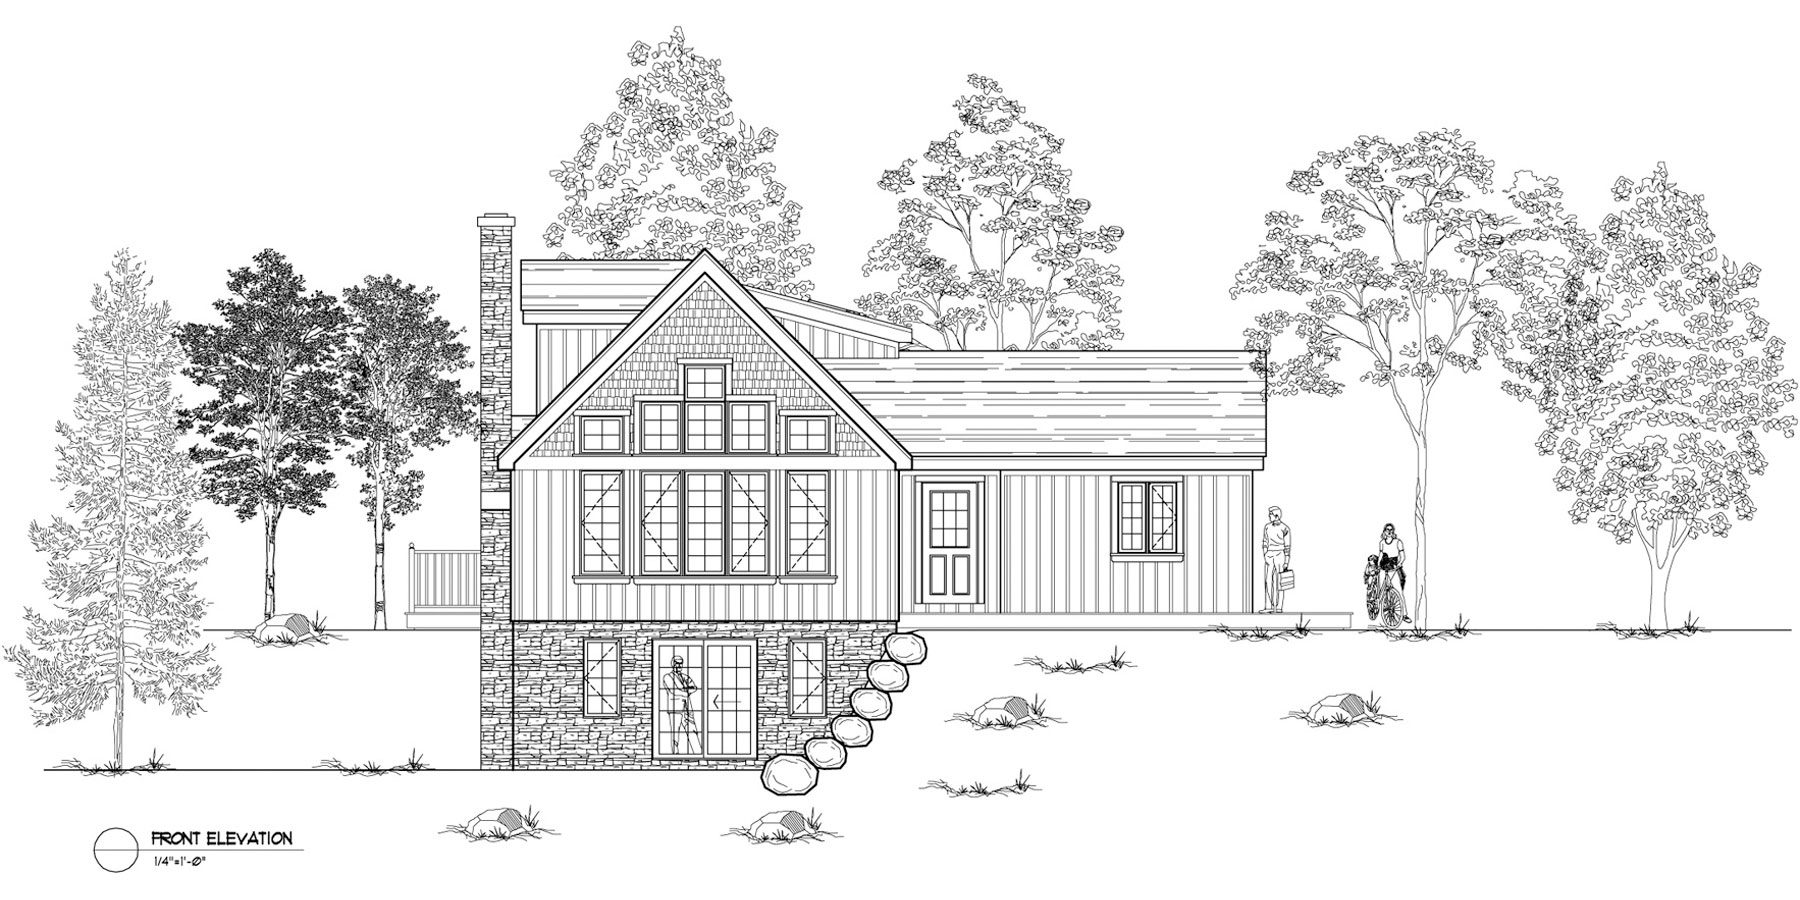 Normerica Timber Frames, House Plan, The Simcoe 3239, Front Elevation